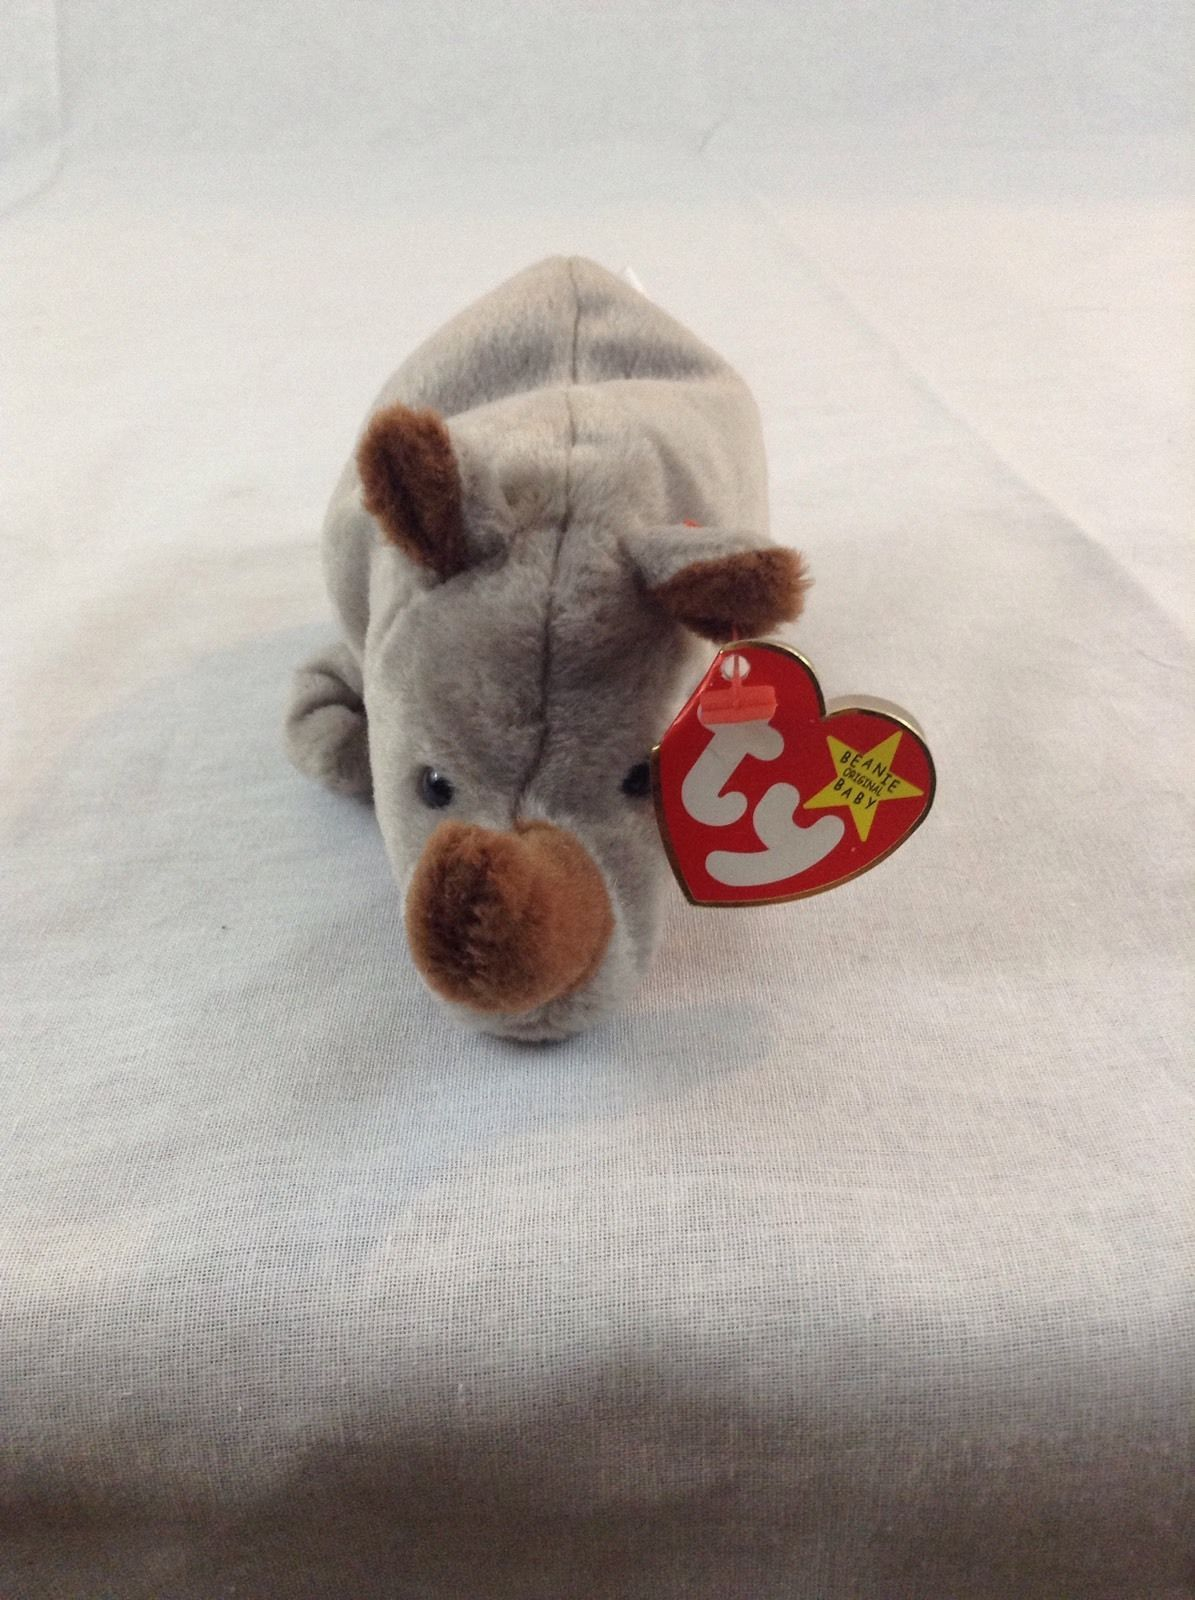 how to clean beanie baby-like stuffed animals